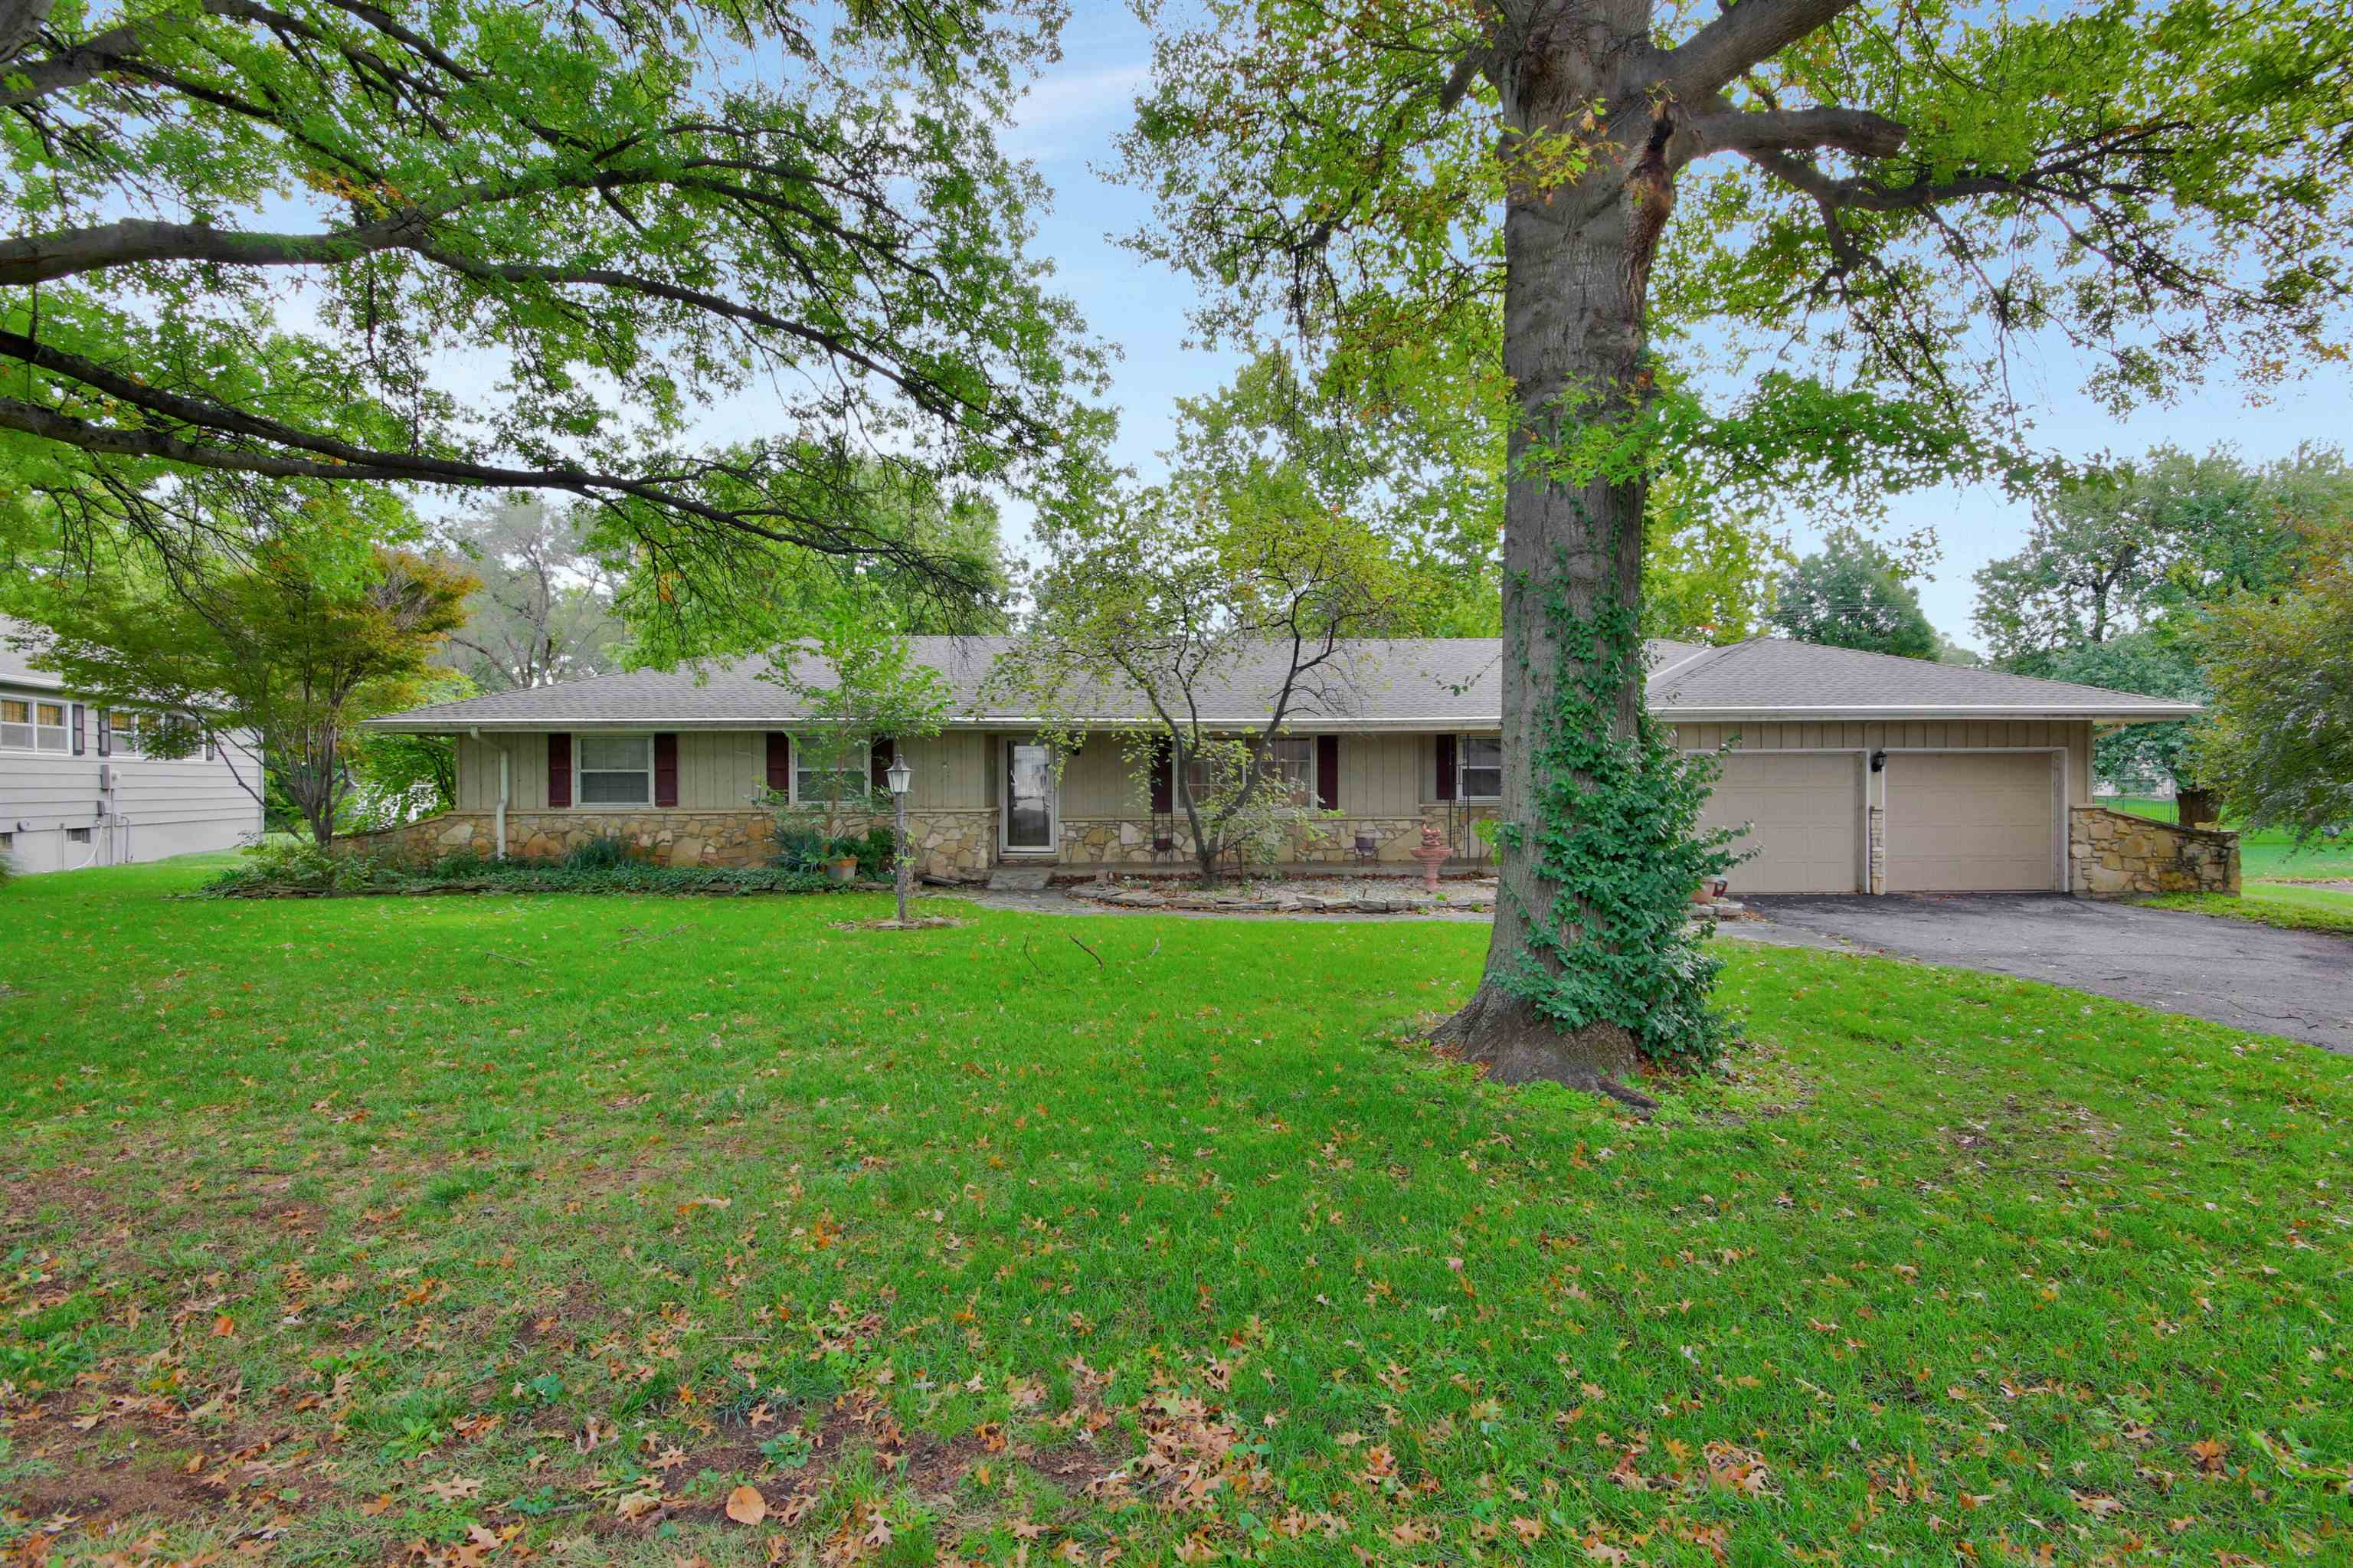 Come check out this adorable 3 bedroom, 2 and 1/2 bathroom home nestled in Hidden Lakes. The home ha